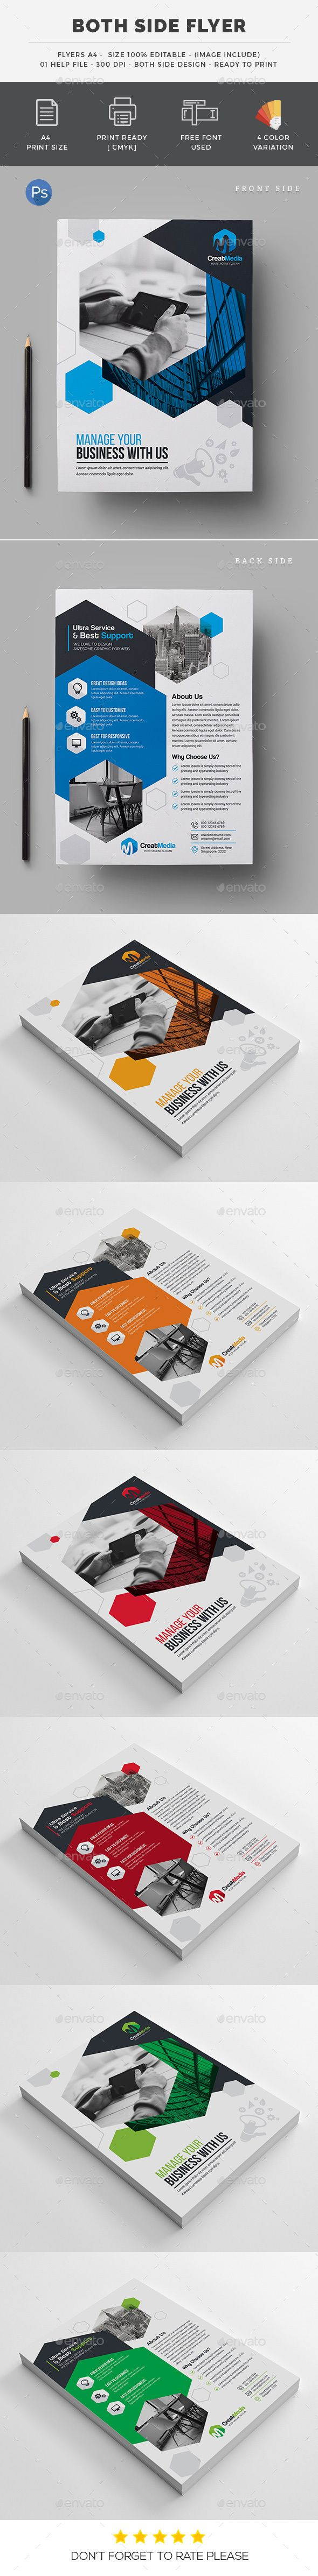 Both Side #Flyer - #Corporate Flyers Download here: https://graphicriver.net/item/both-side-flyer/19466322?ref=alena994